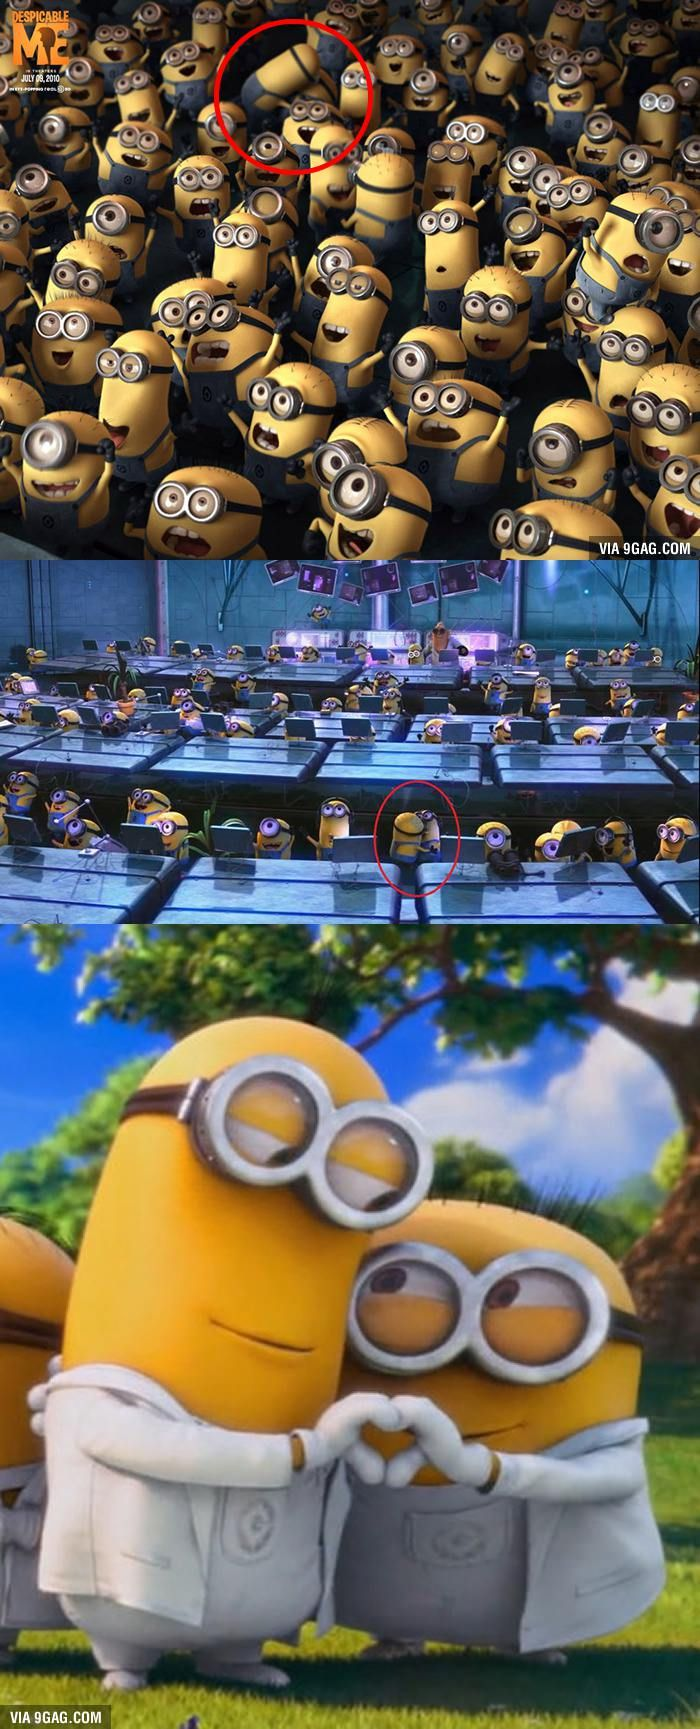 Minion agree with gay marriage, now the rest of the world